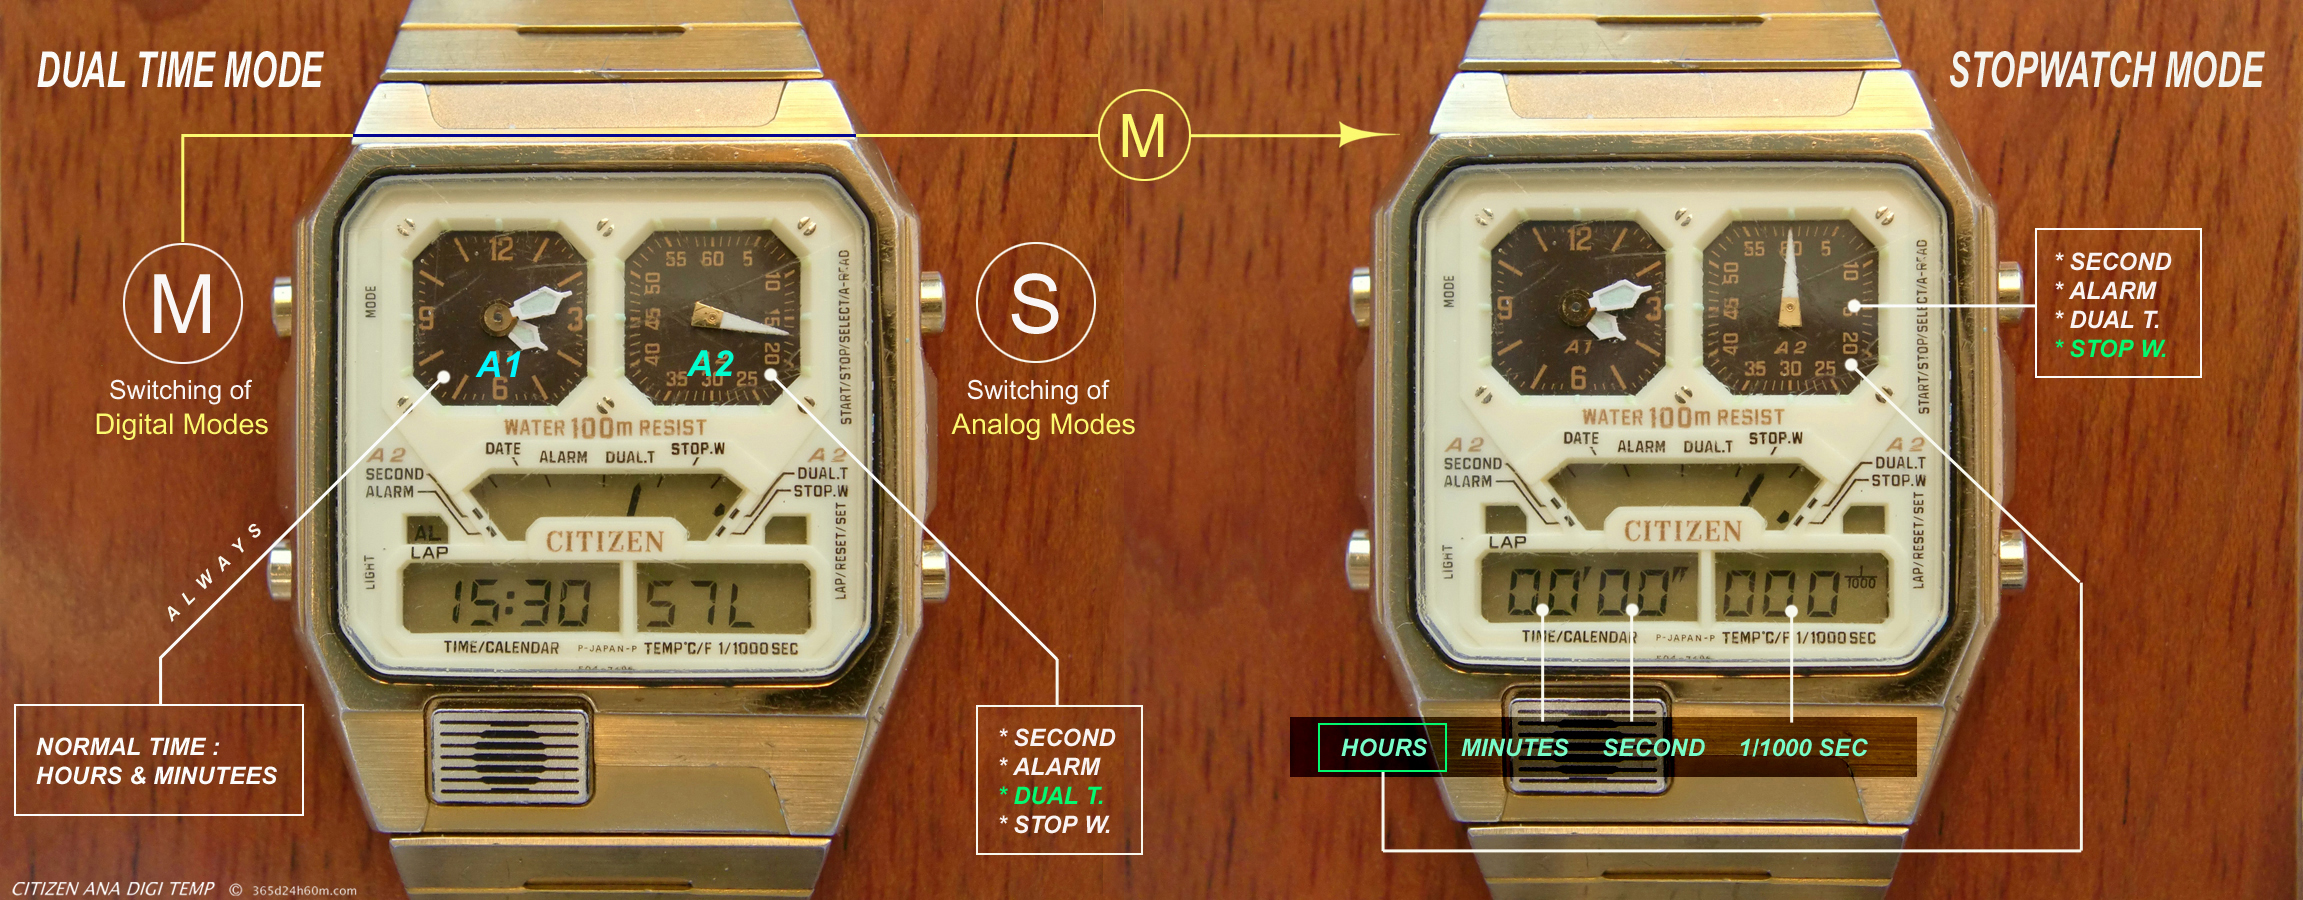 2-nd Analog Watch Indication after the entry into the Digital Stopwatch Mode?Click to enlarge !